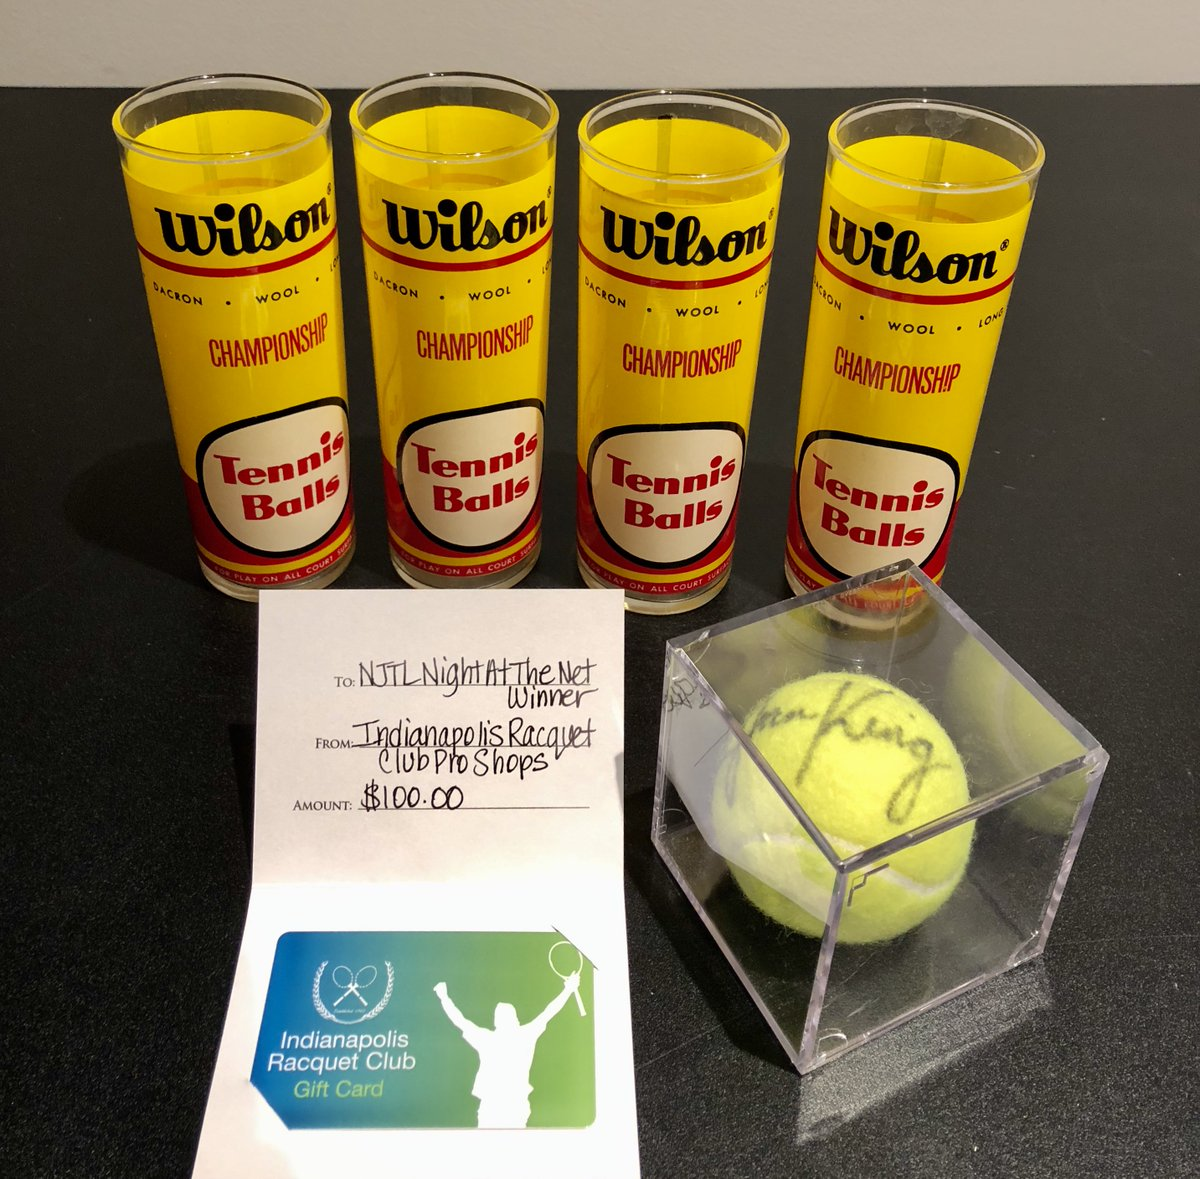 We're just NINE days from NIGHT AT THE NET!  Check out one of our silent auction packages for #ThrowbackThursday. Glasses that look like vintage Wilson cans!  The winning bidder also gets an @IRCTennis gift card and a Billie Jean King signed ball!  🎟️:  https://www.eventbrite.com/e/night-at-the-net-presented-by-njtl-of-indianapolis-tickets-88745517231…